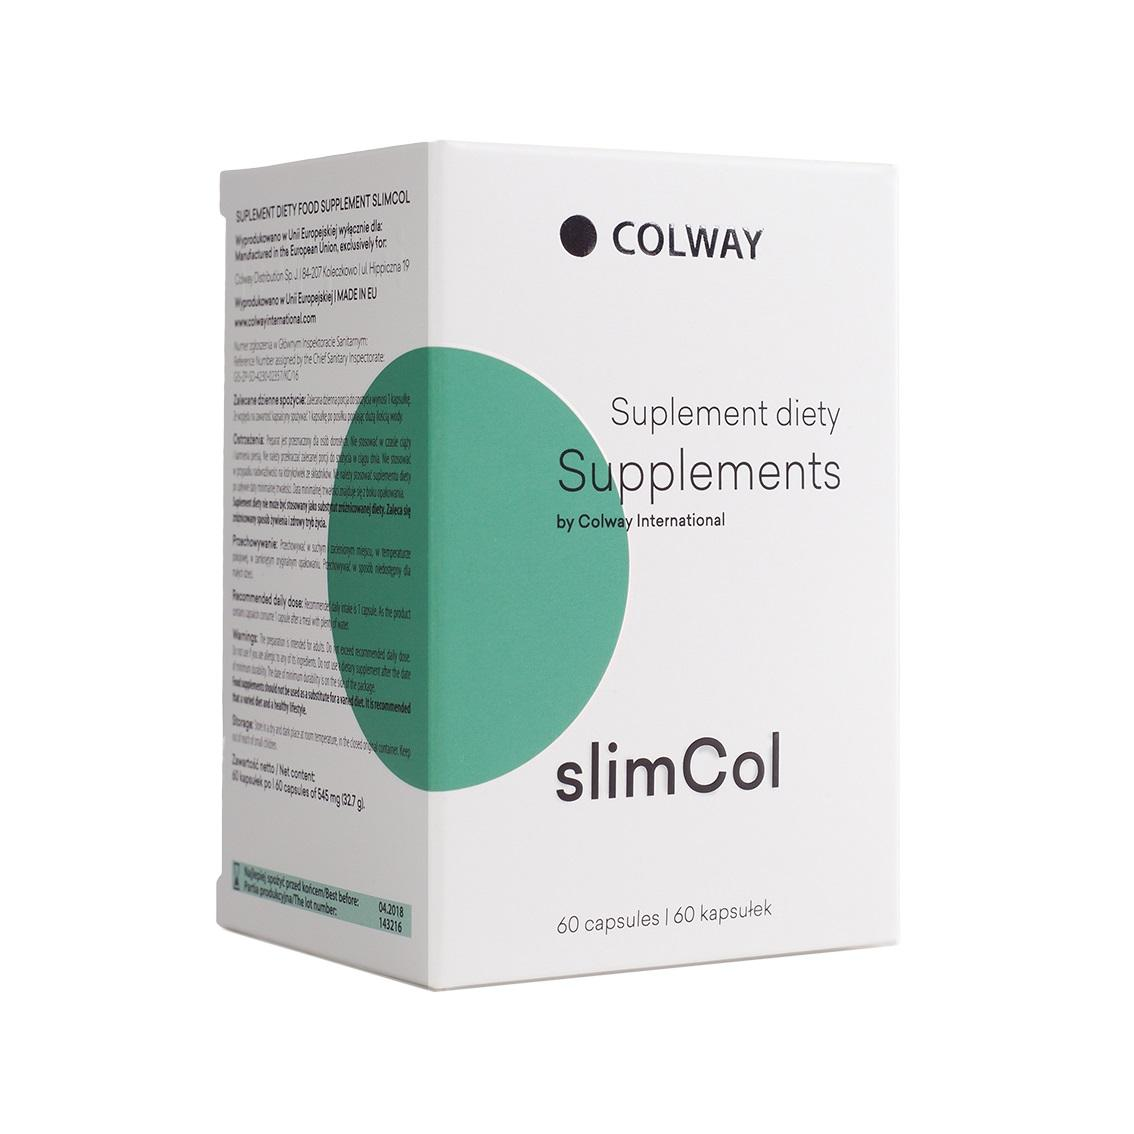 SlimCol SlimCol  60br COLWAY INTERNATIONAL